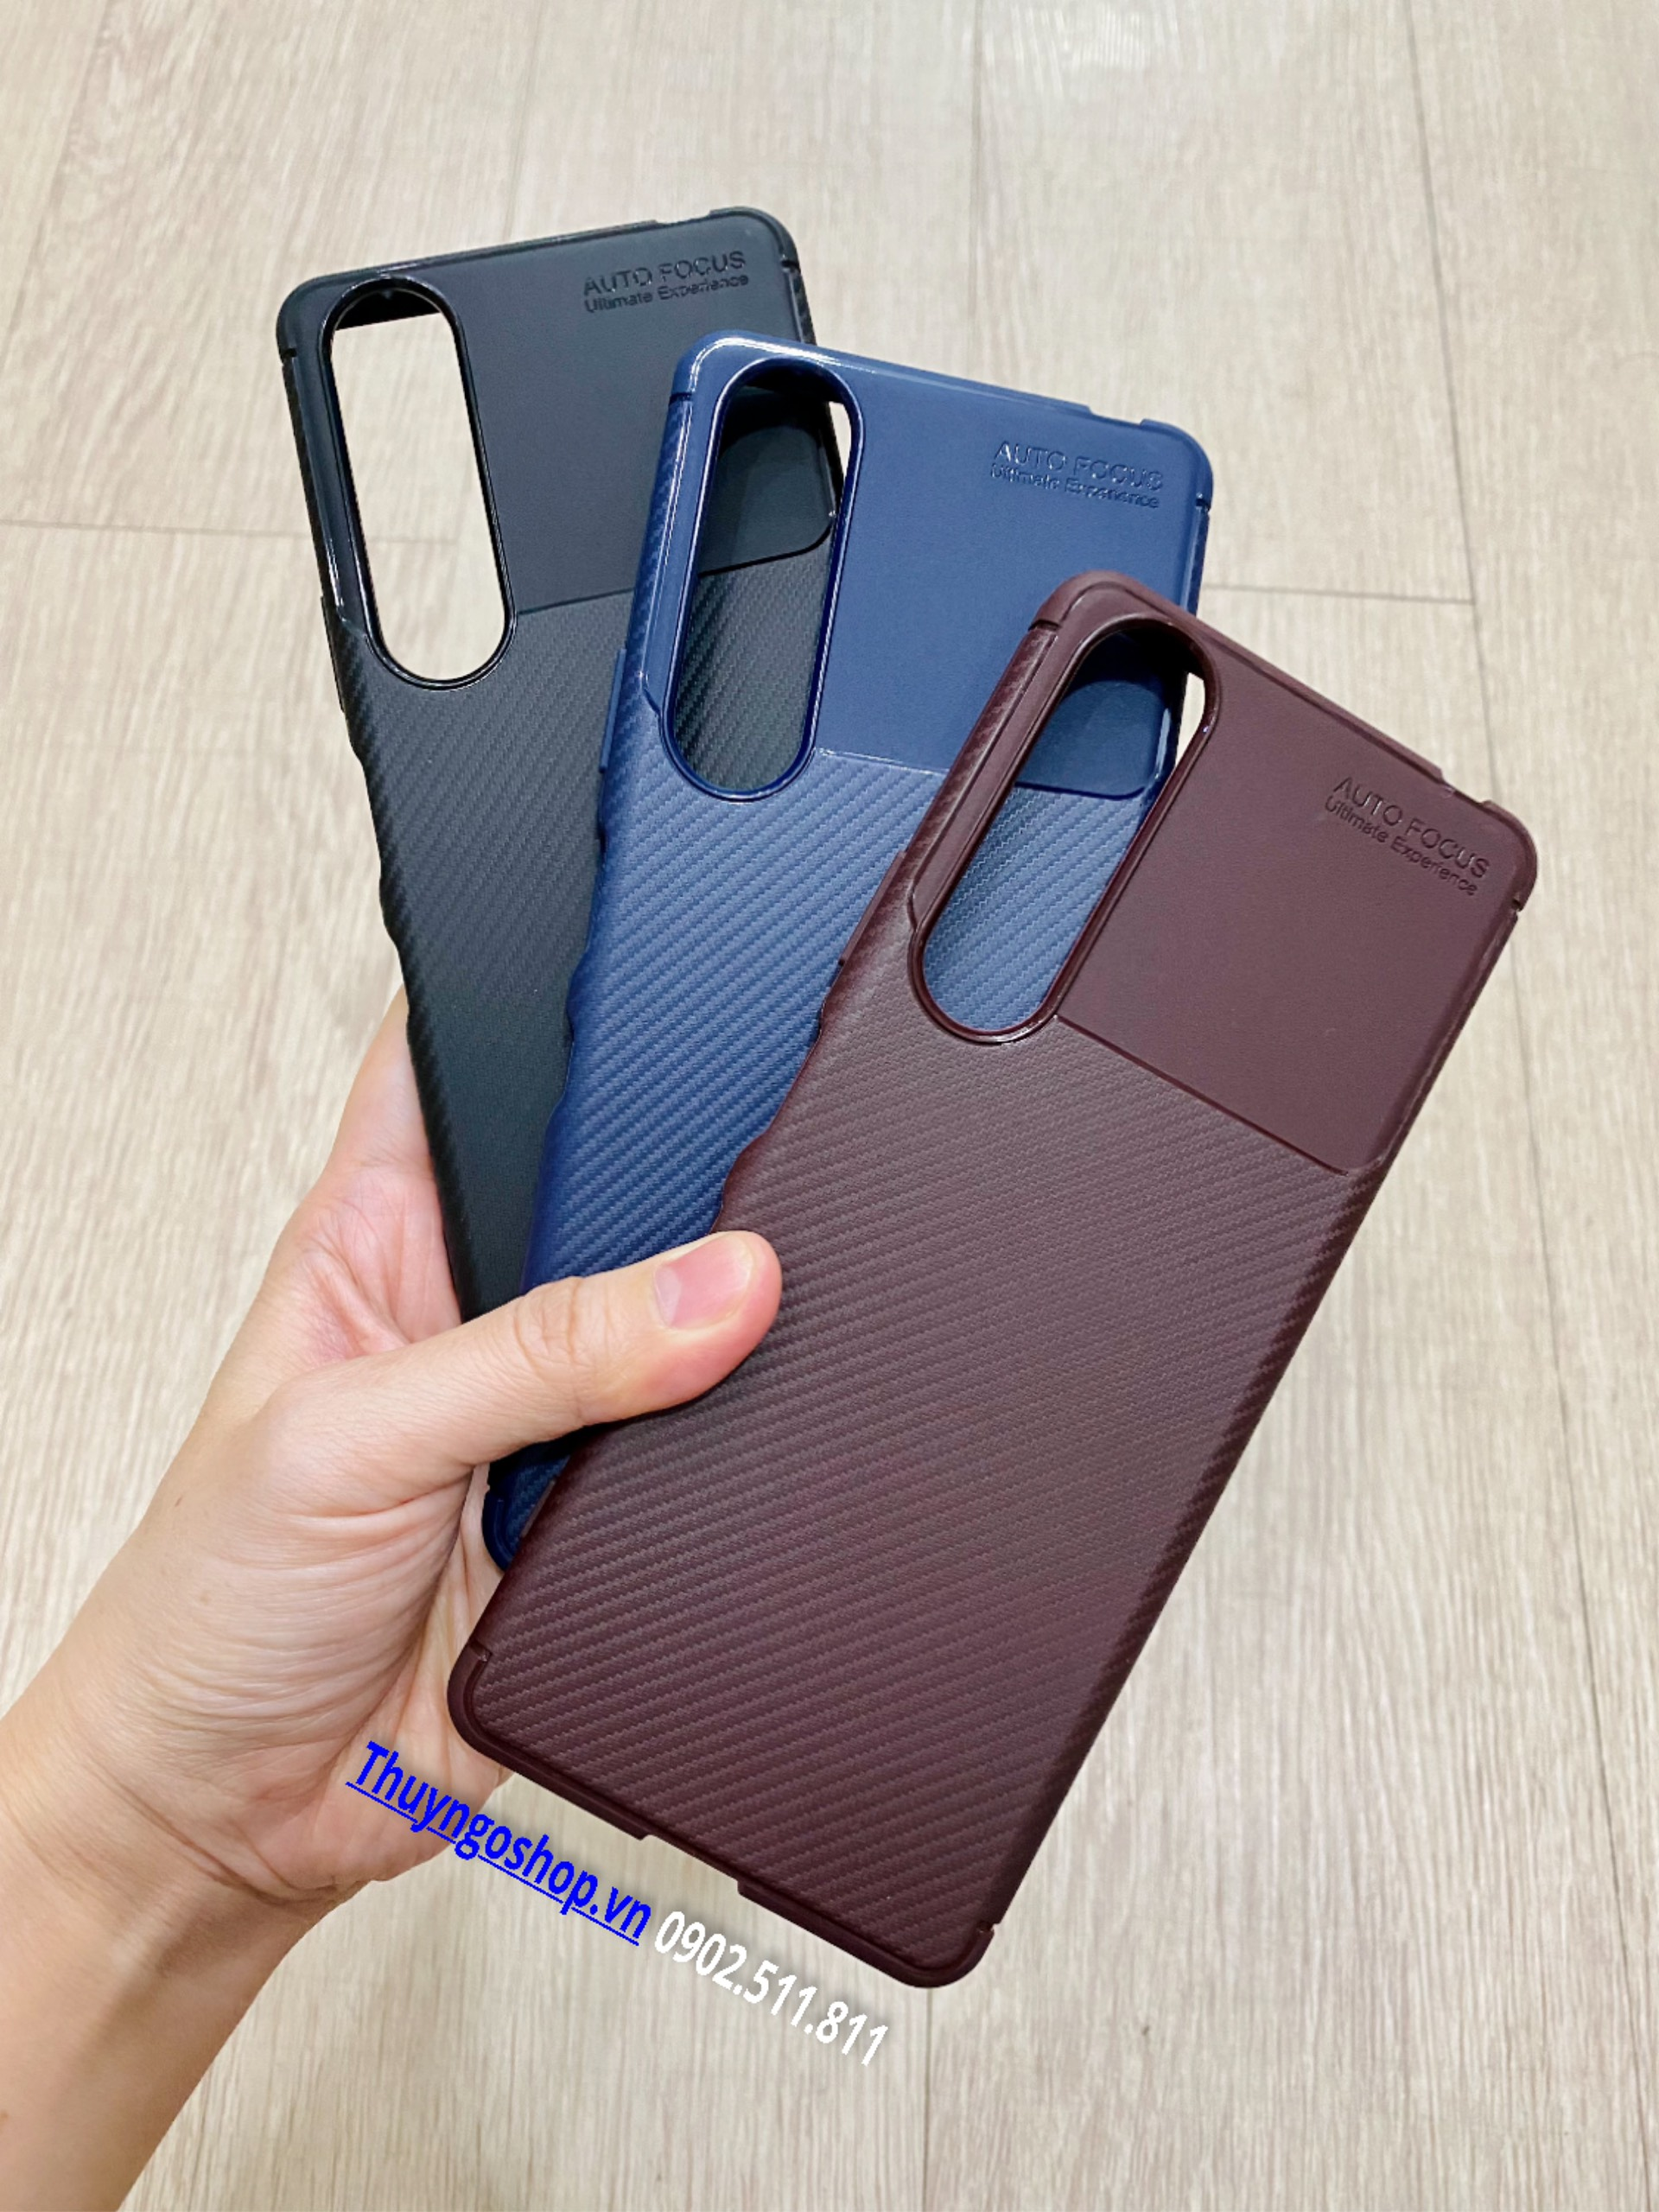 Ốp dẻo carbon chống sốc Sony Xperia 1 III